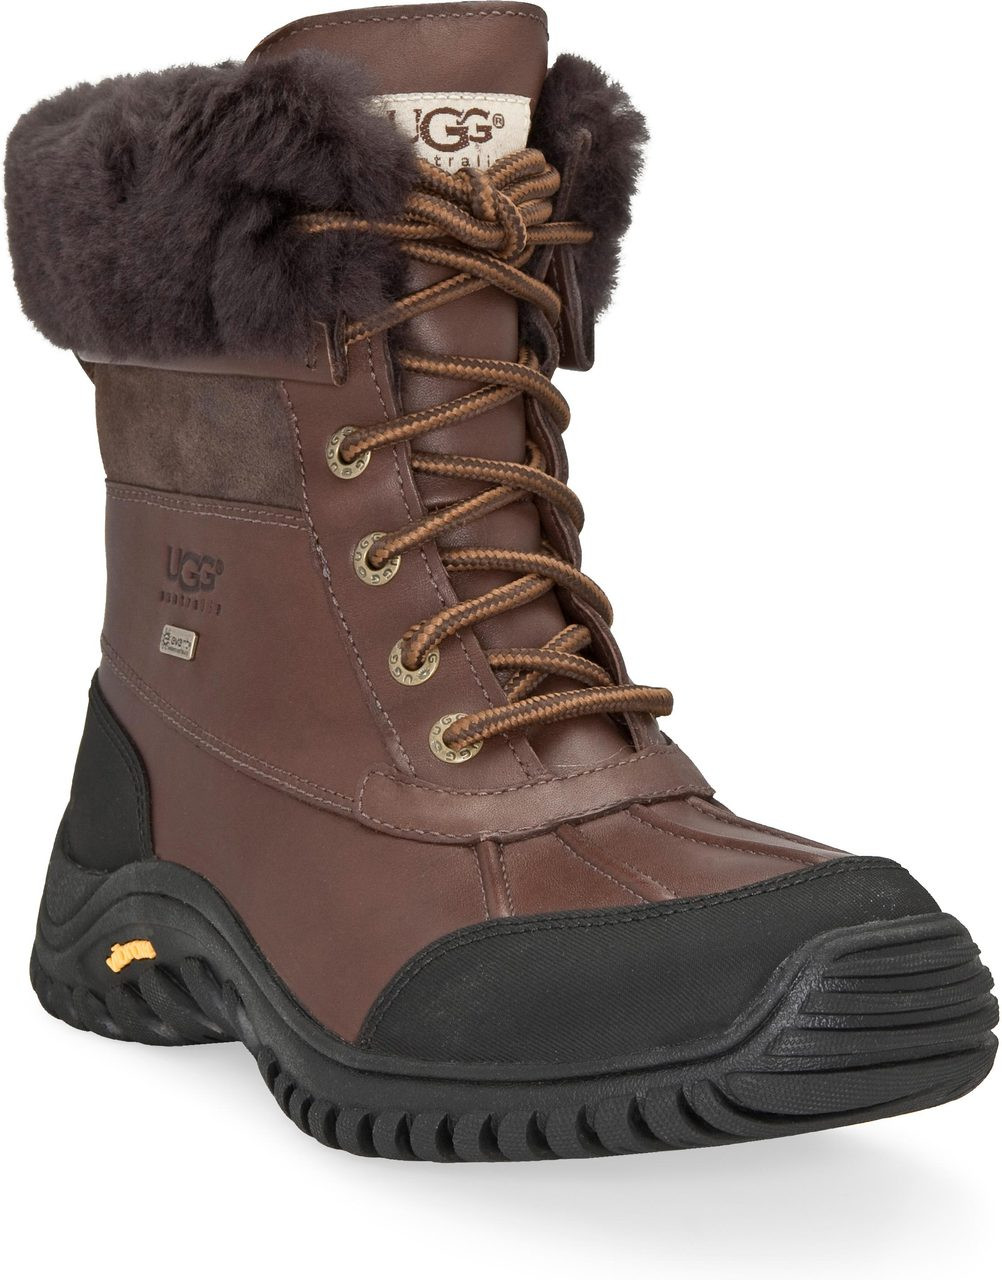 ugg women 39 s adirondack boot ii free shipping free returns ugg women 39 s ankle boots casual. Black Bedroom Furniture Sets. Home Design Ideas